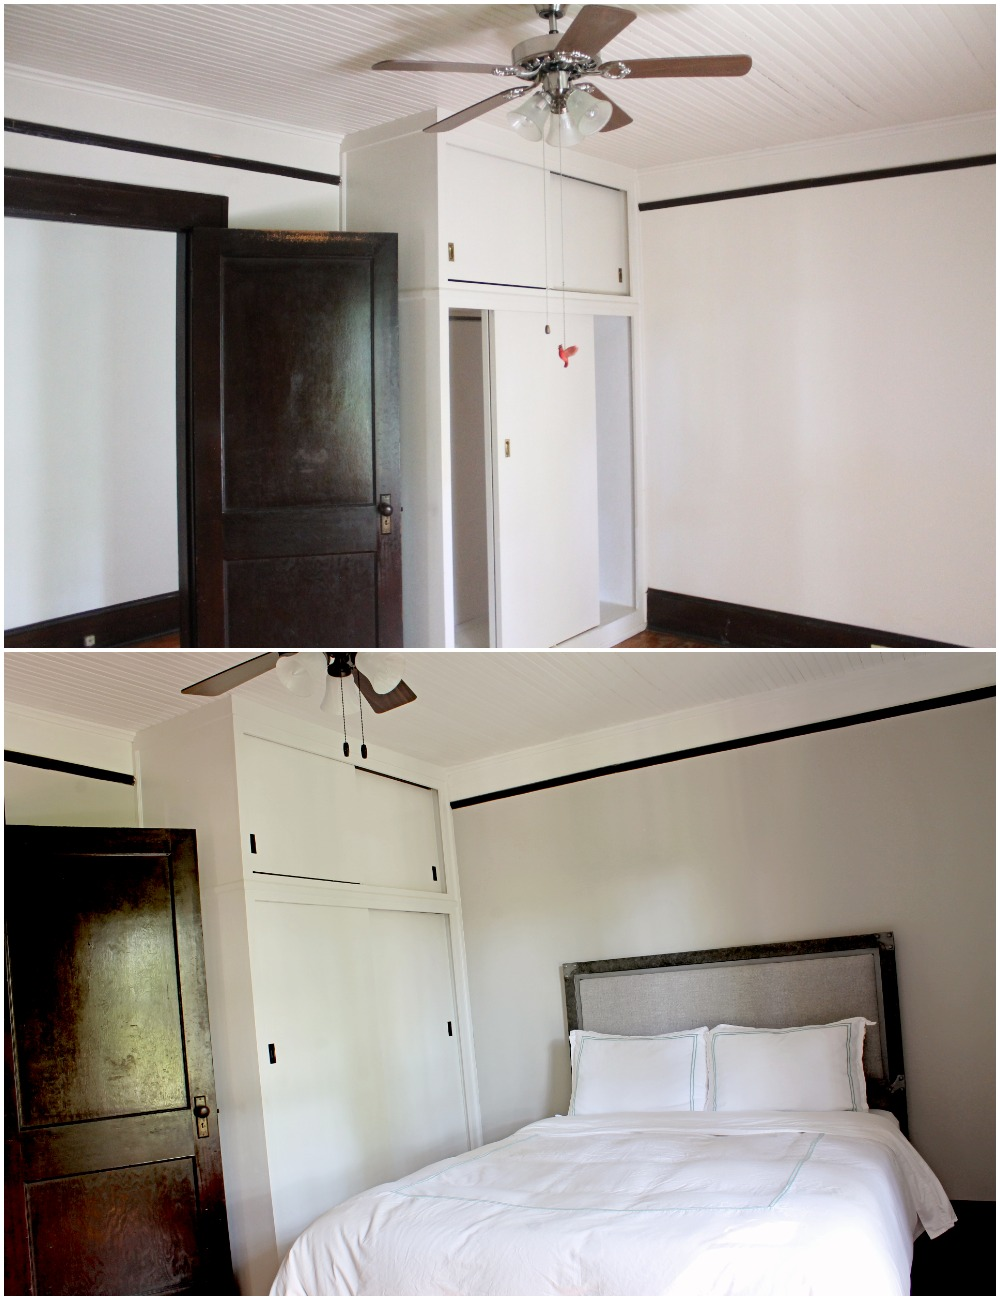 House Flipping Before and Afters - DIY BUDGET BEDROOM IDEAS (4).jpg